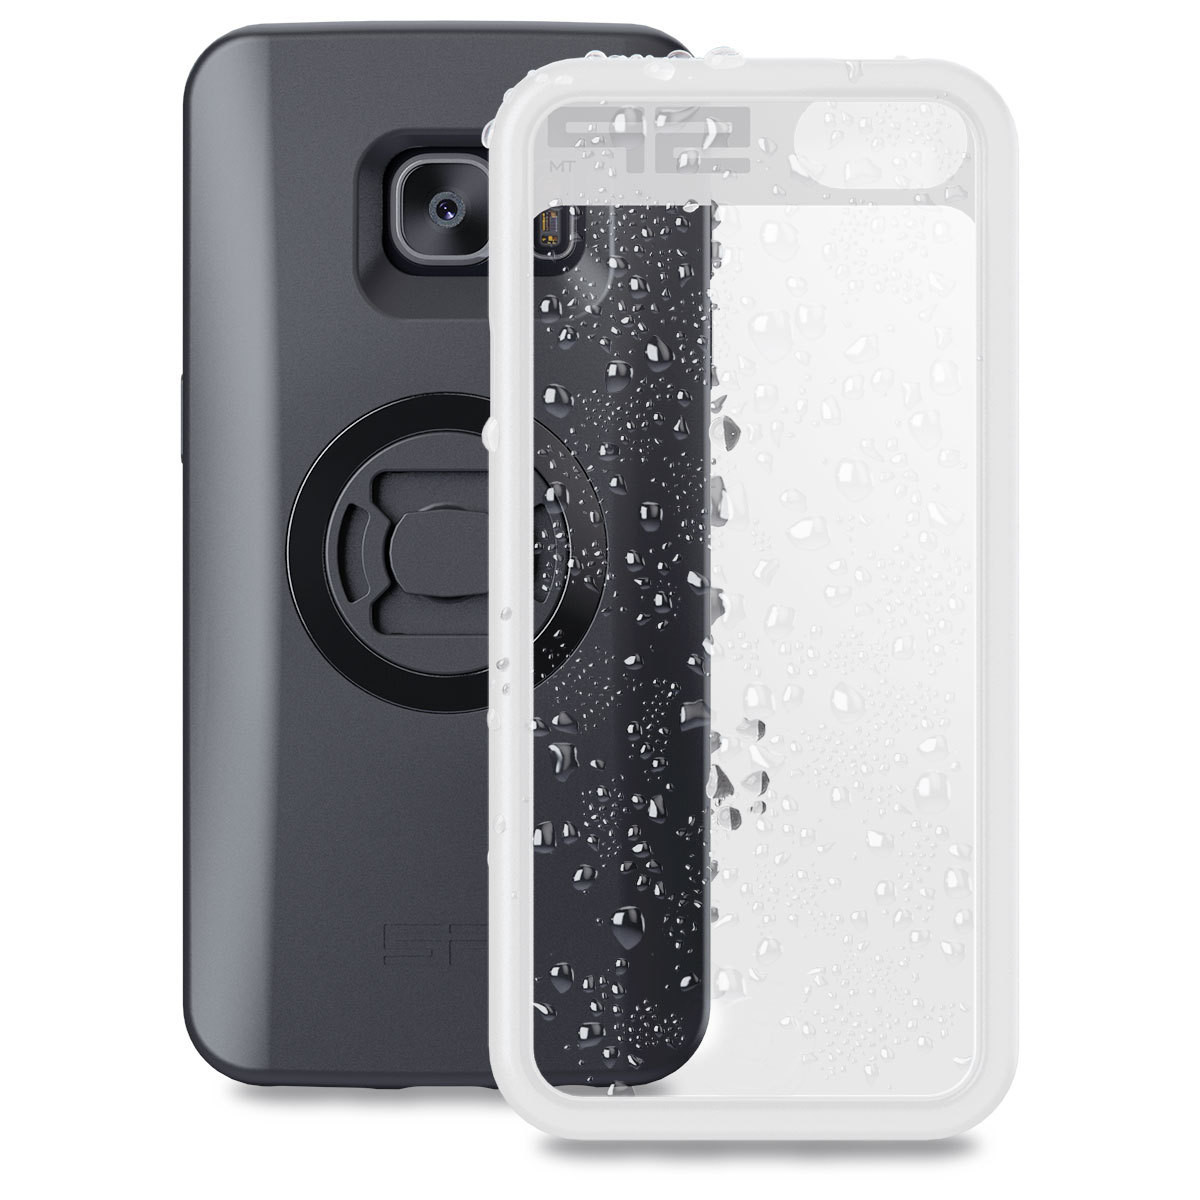 62cad643ad7 SP GADGETS Weather Cover para iPhone 7/6S/6 - Motoss.cl/Ride-Chile.com